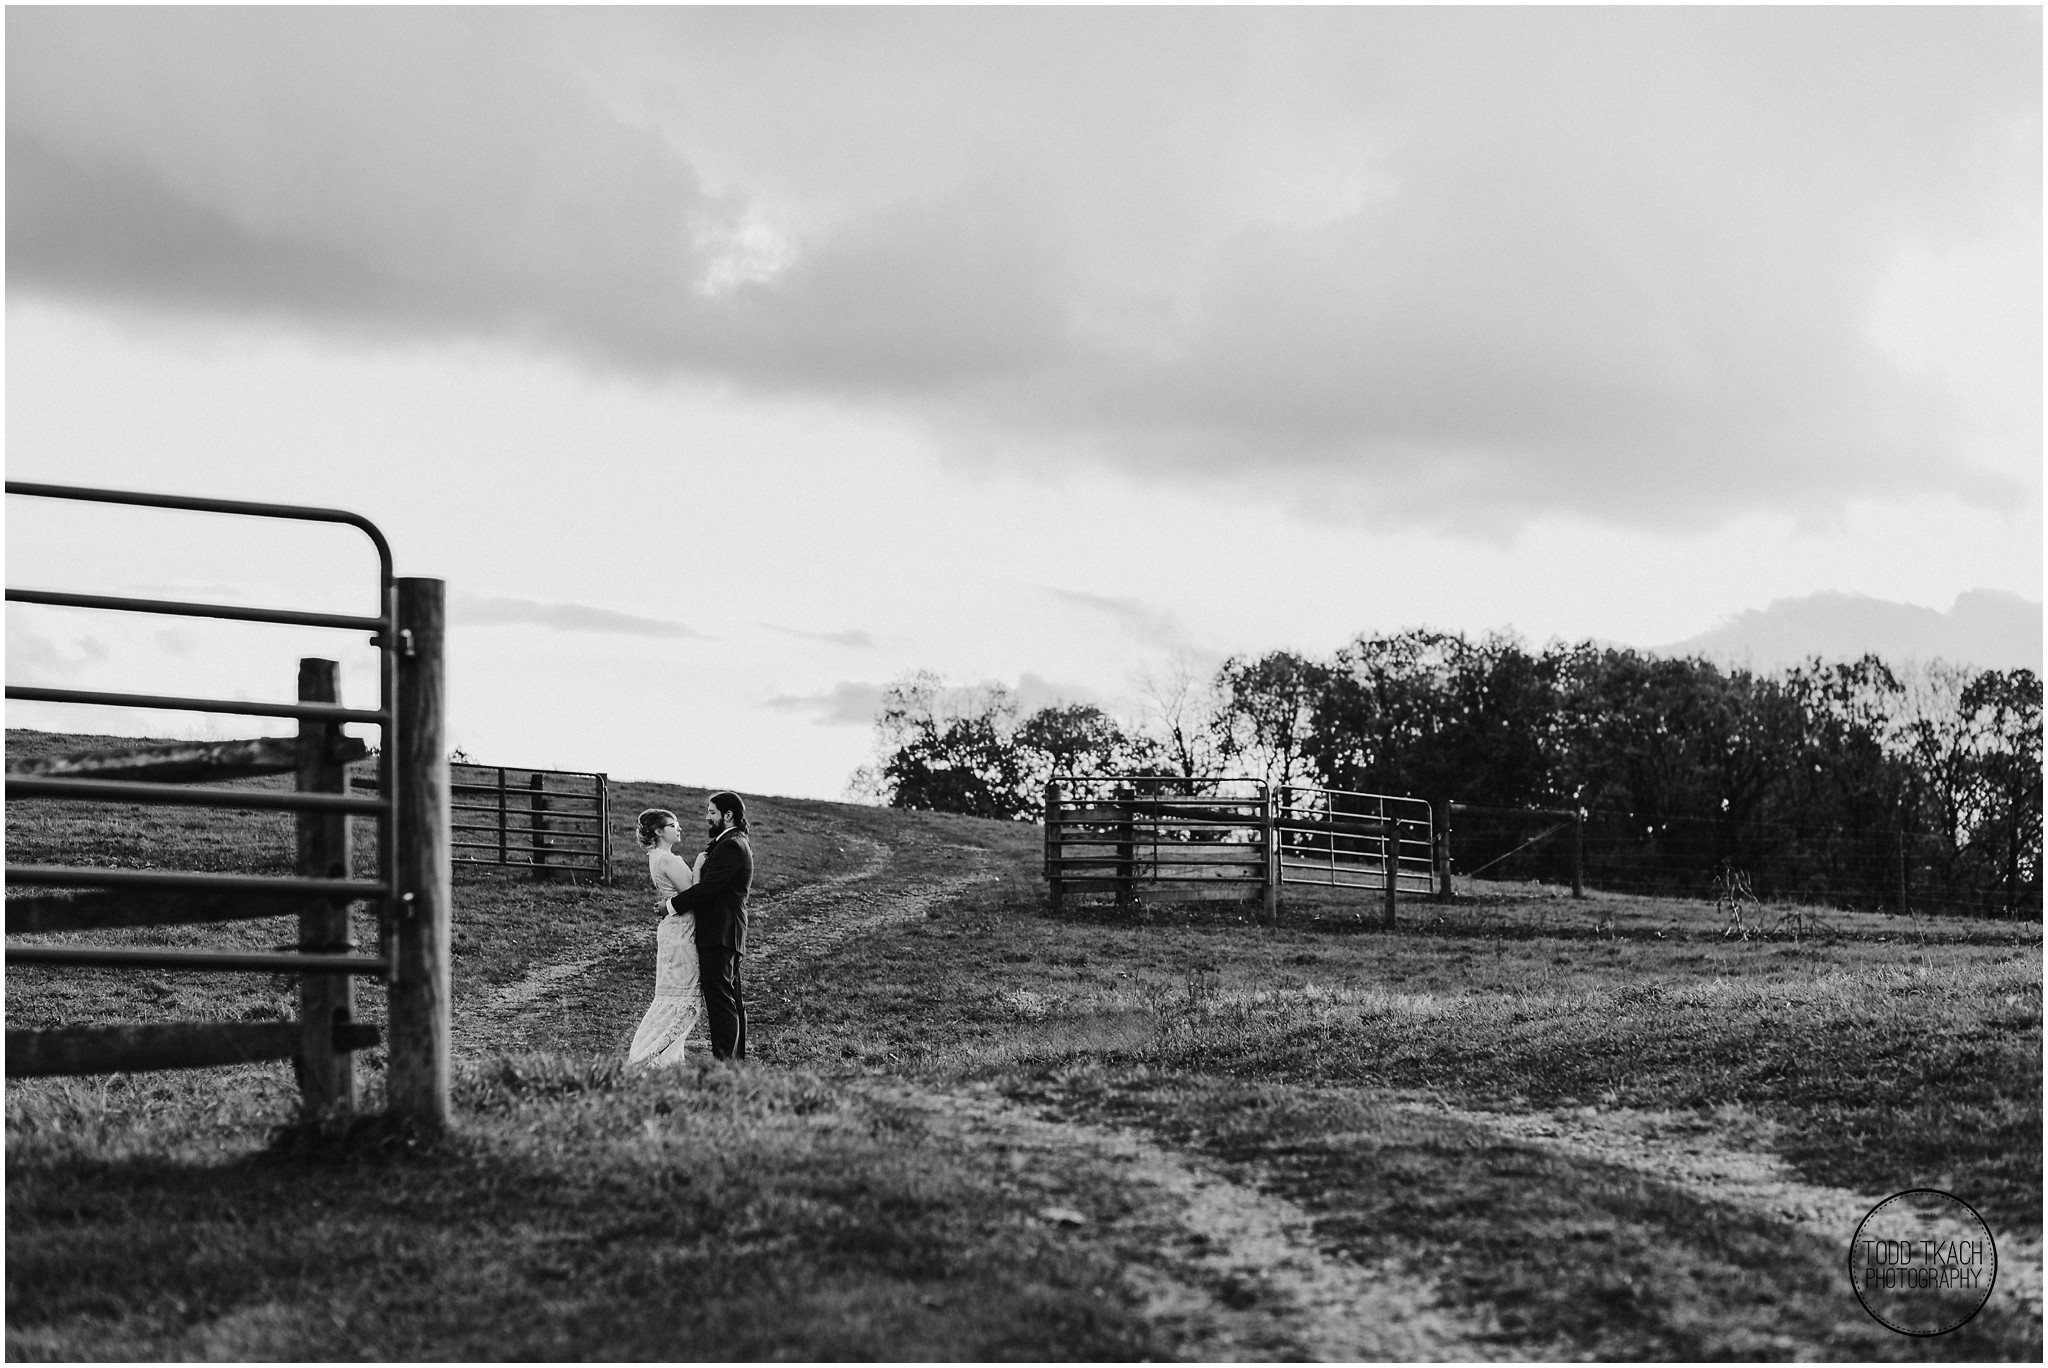 Alyse & Michael Wedding - Black White Field Portrait